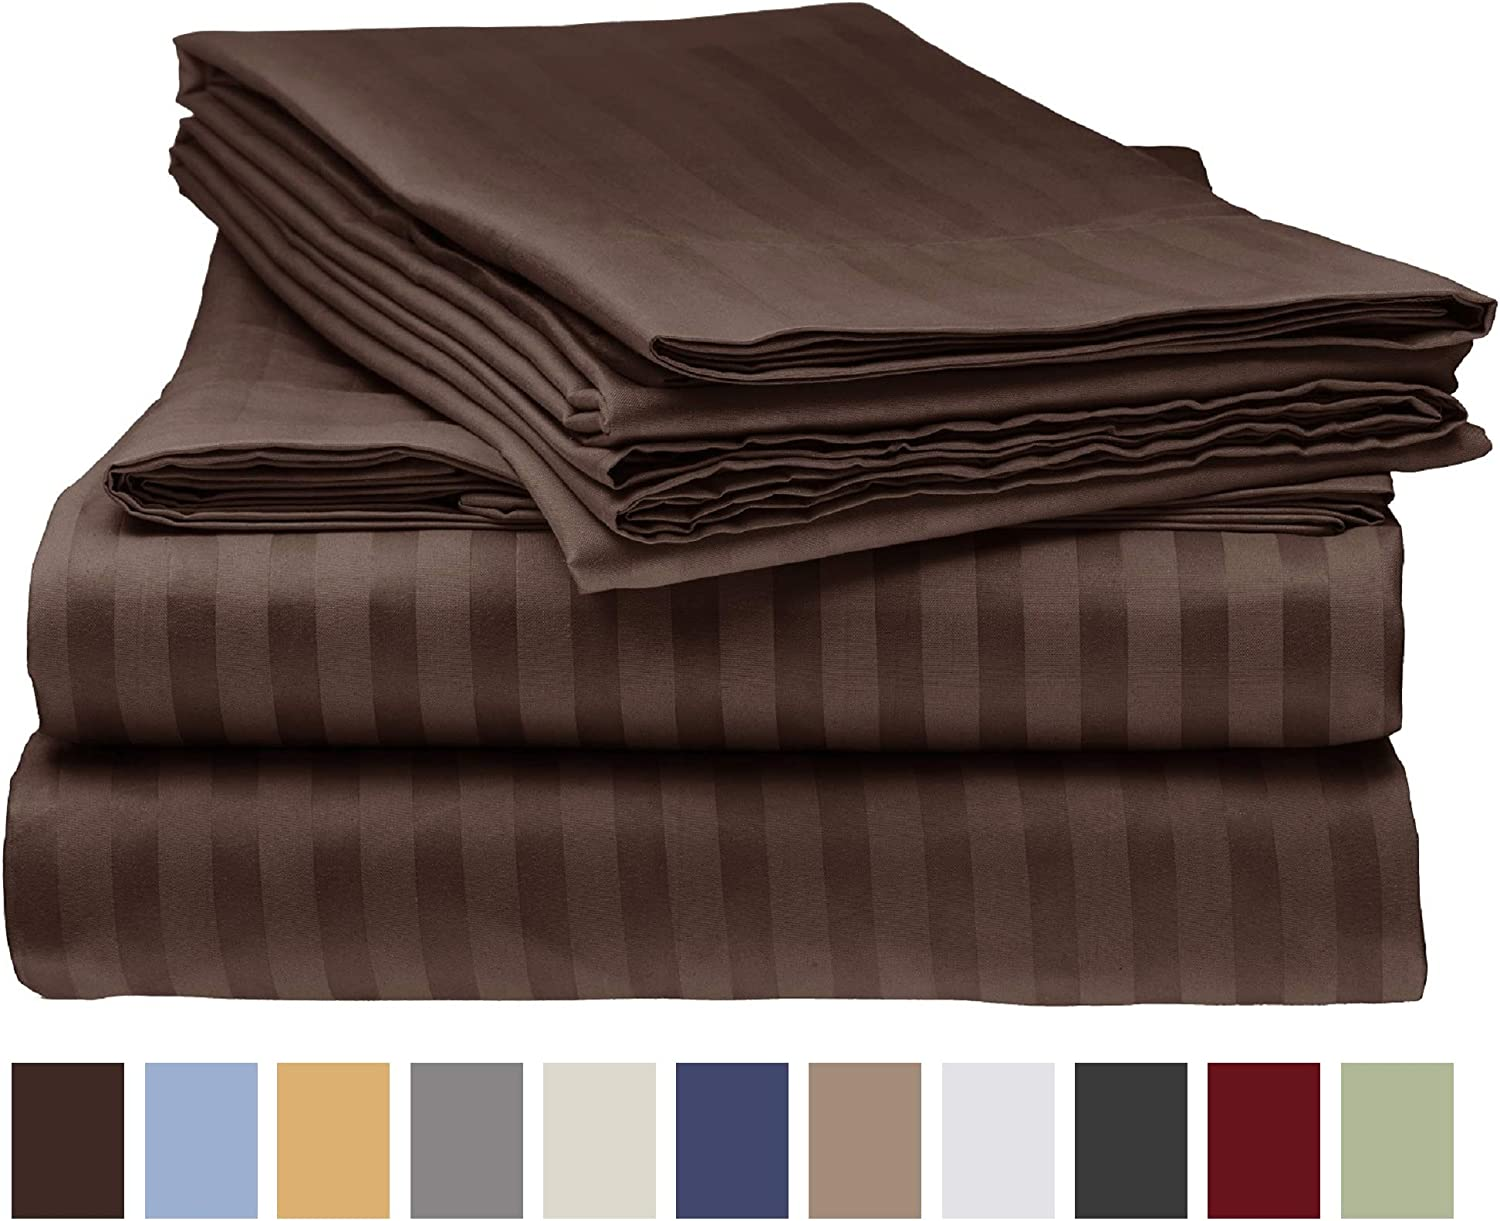 Deluxe 4pc Striped KING Bed Sheets Set CHOCOLATE